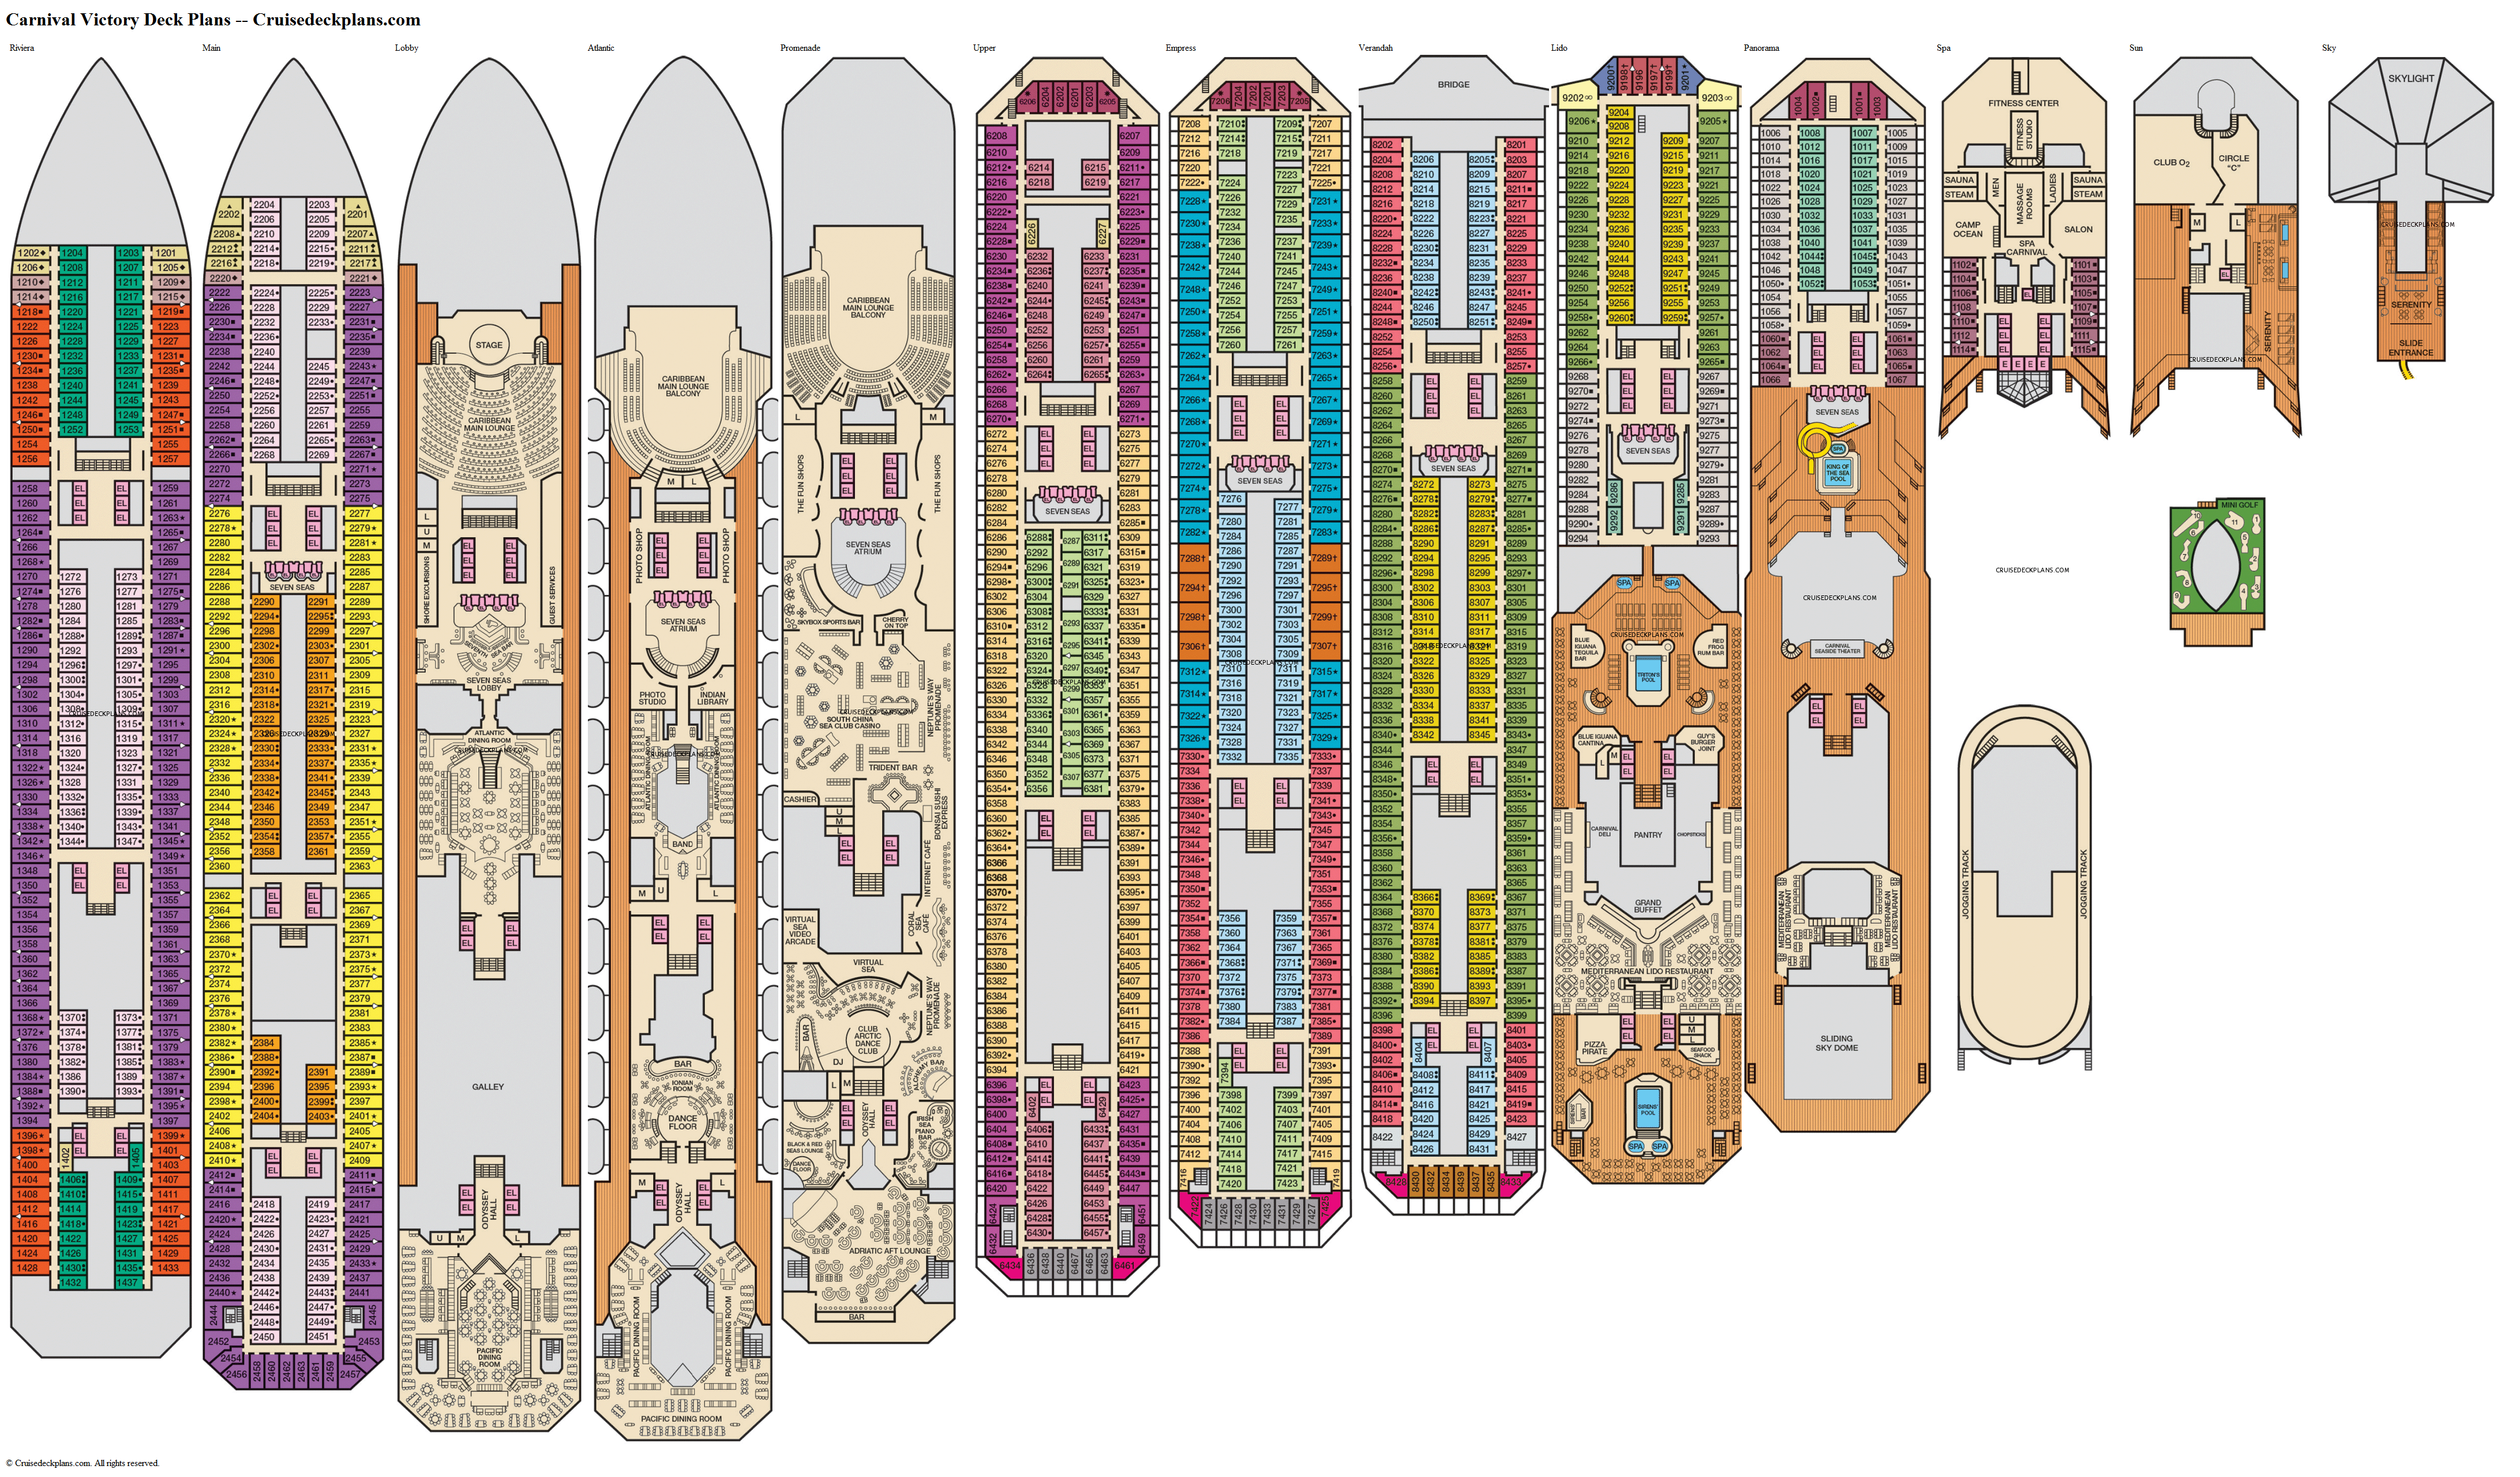 Carnival Victory deck plans image